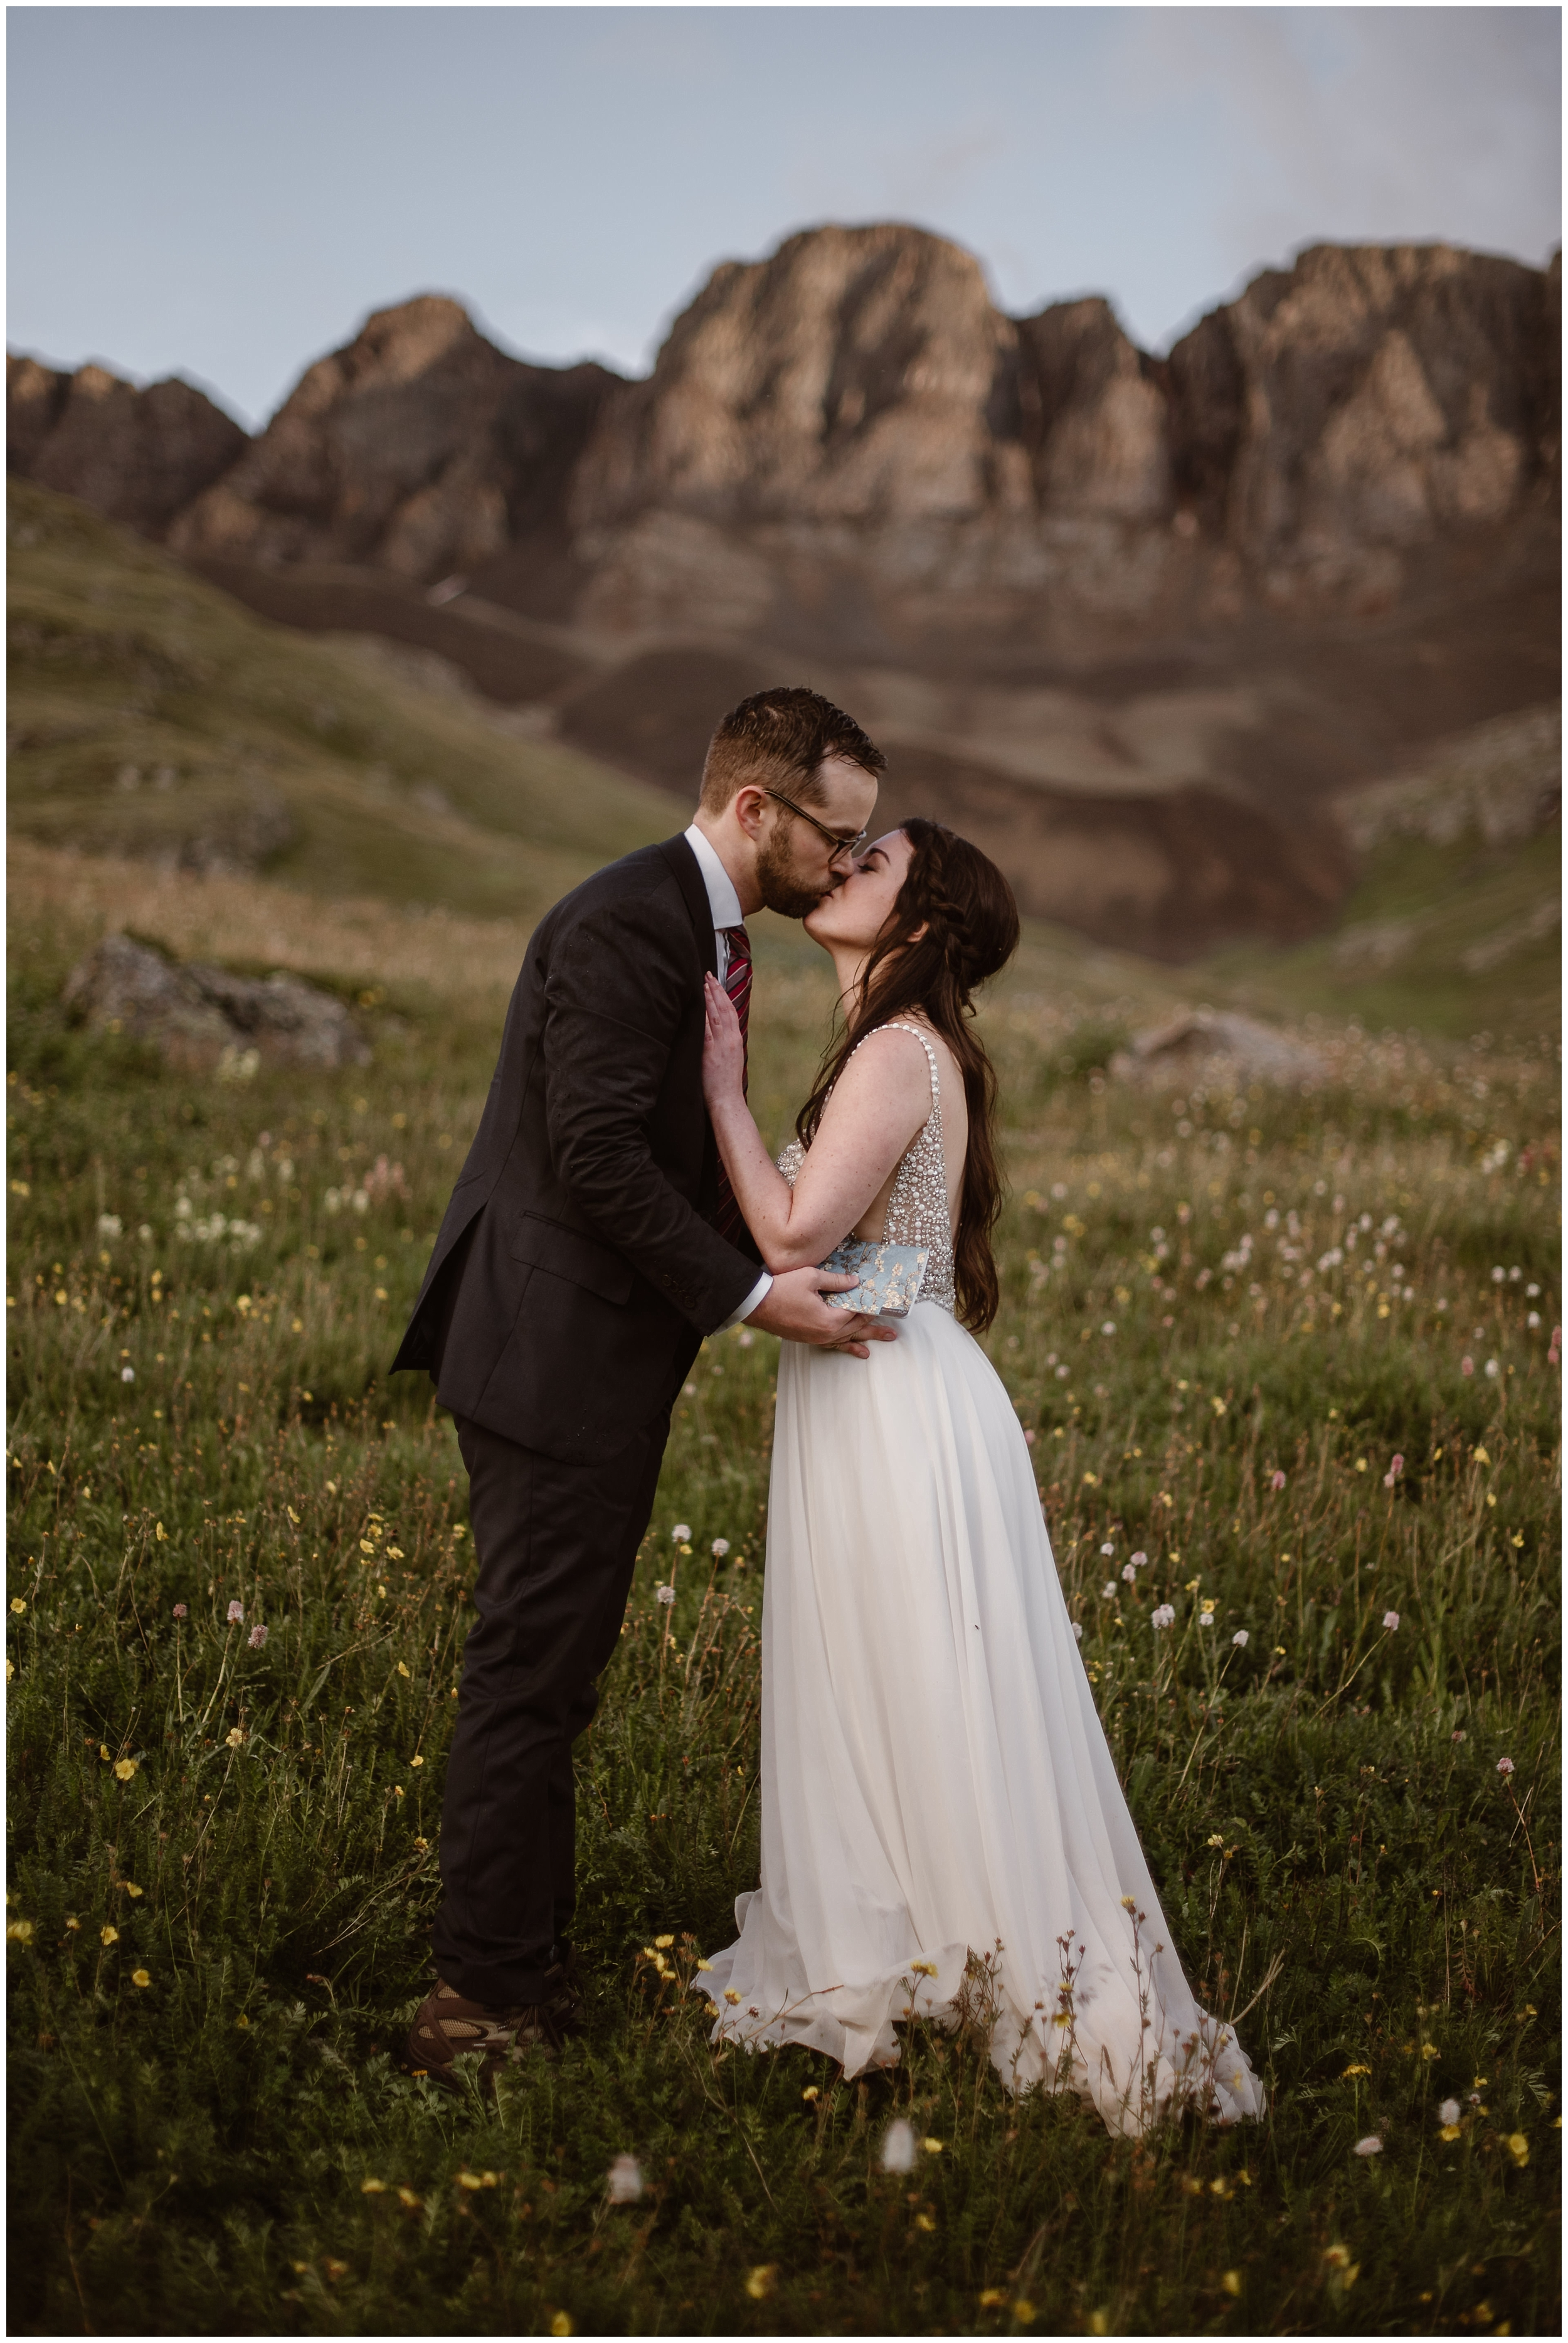 Katie and Logan, the bride and groom, lean in close to kiss at the close of their secluded elopement ceremony. The two of them stand in a wildflower-covered meadow at the basin of a Colorado mountain. Their Colorado mountain wedding was chosen by them because they wanted a location that required off road driving and an adventure Jeep.